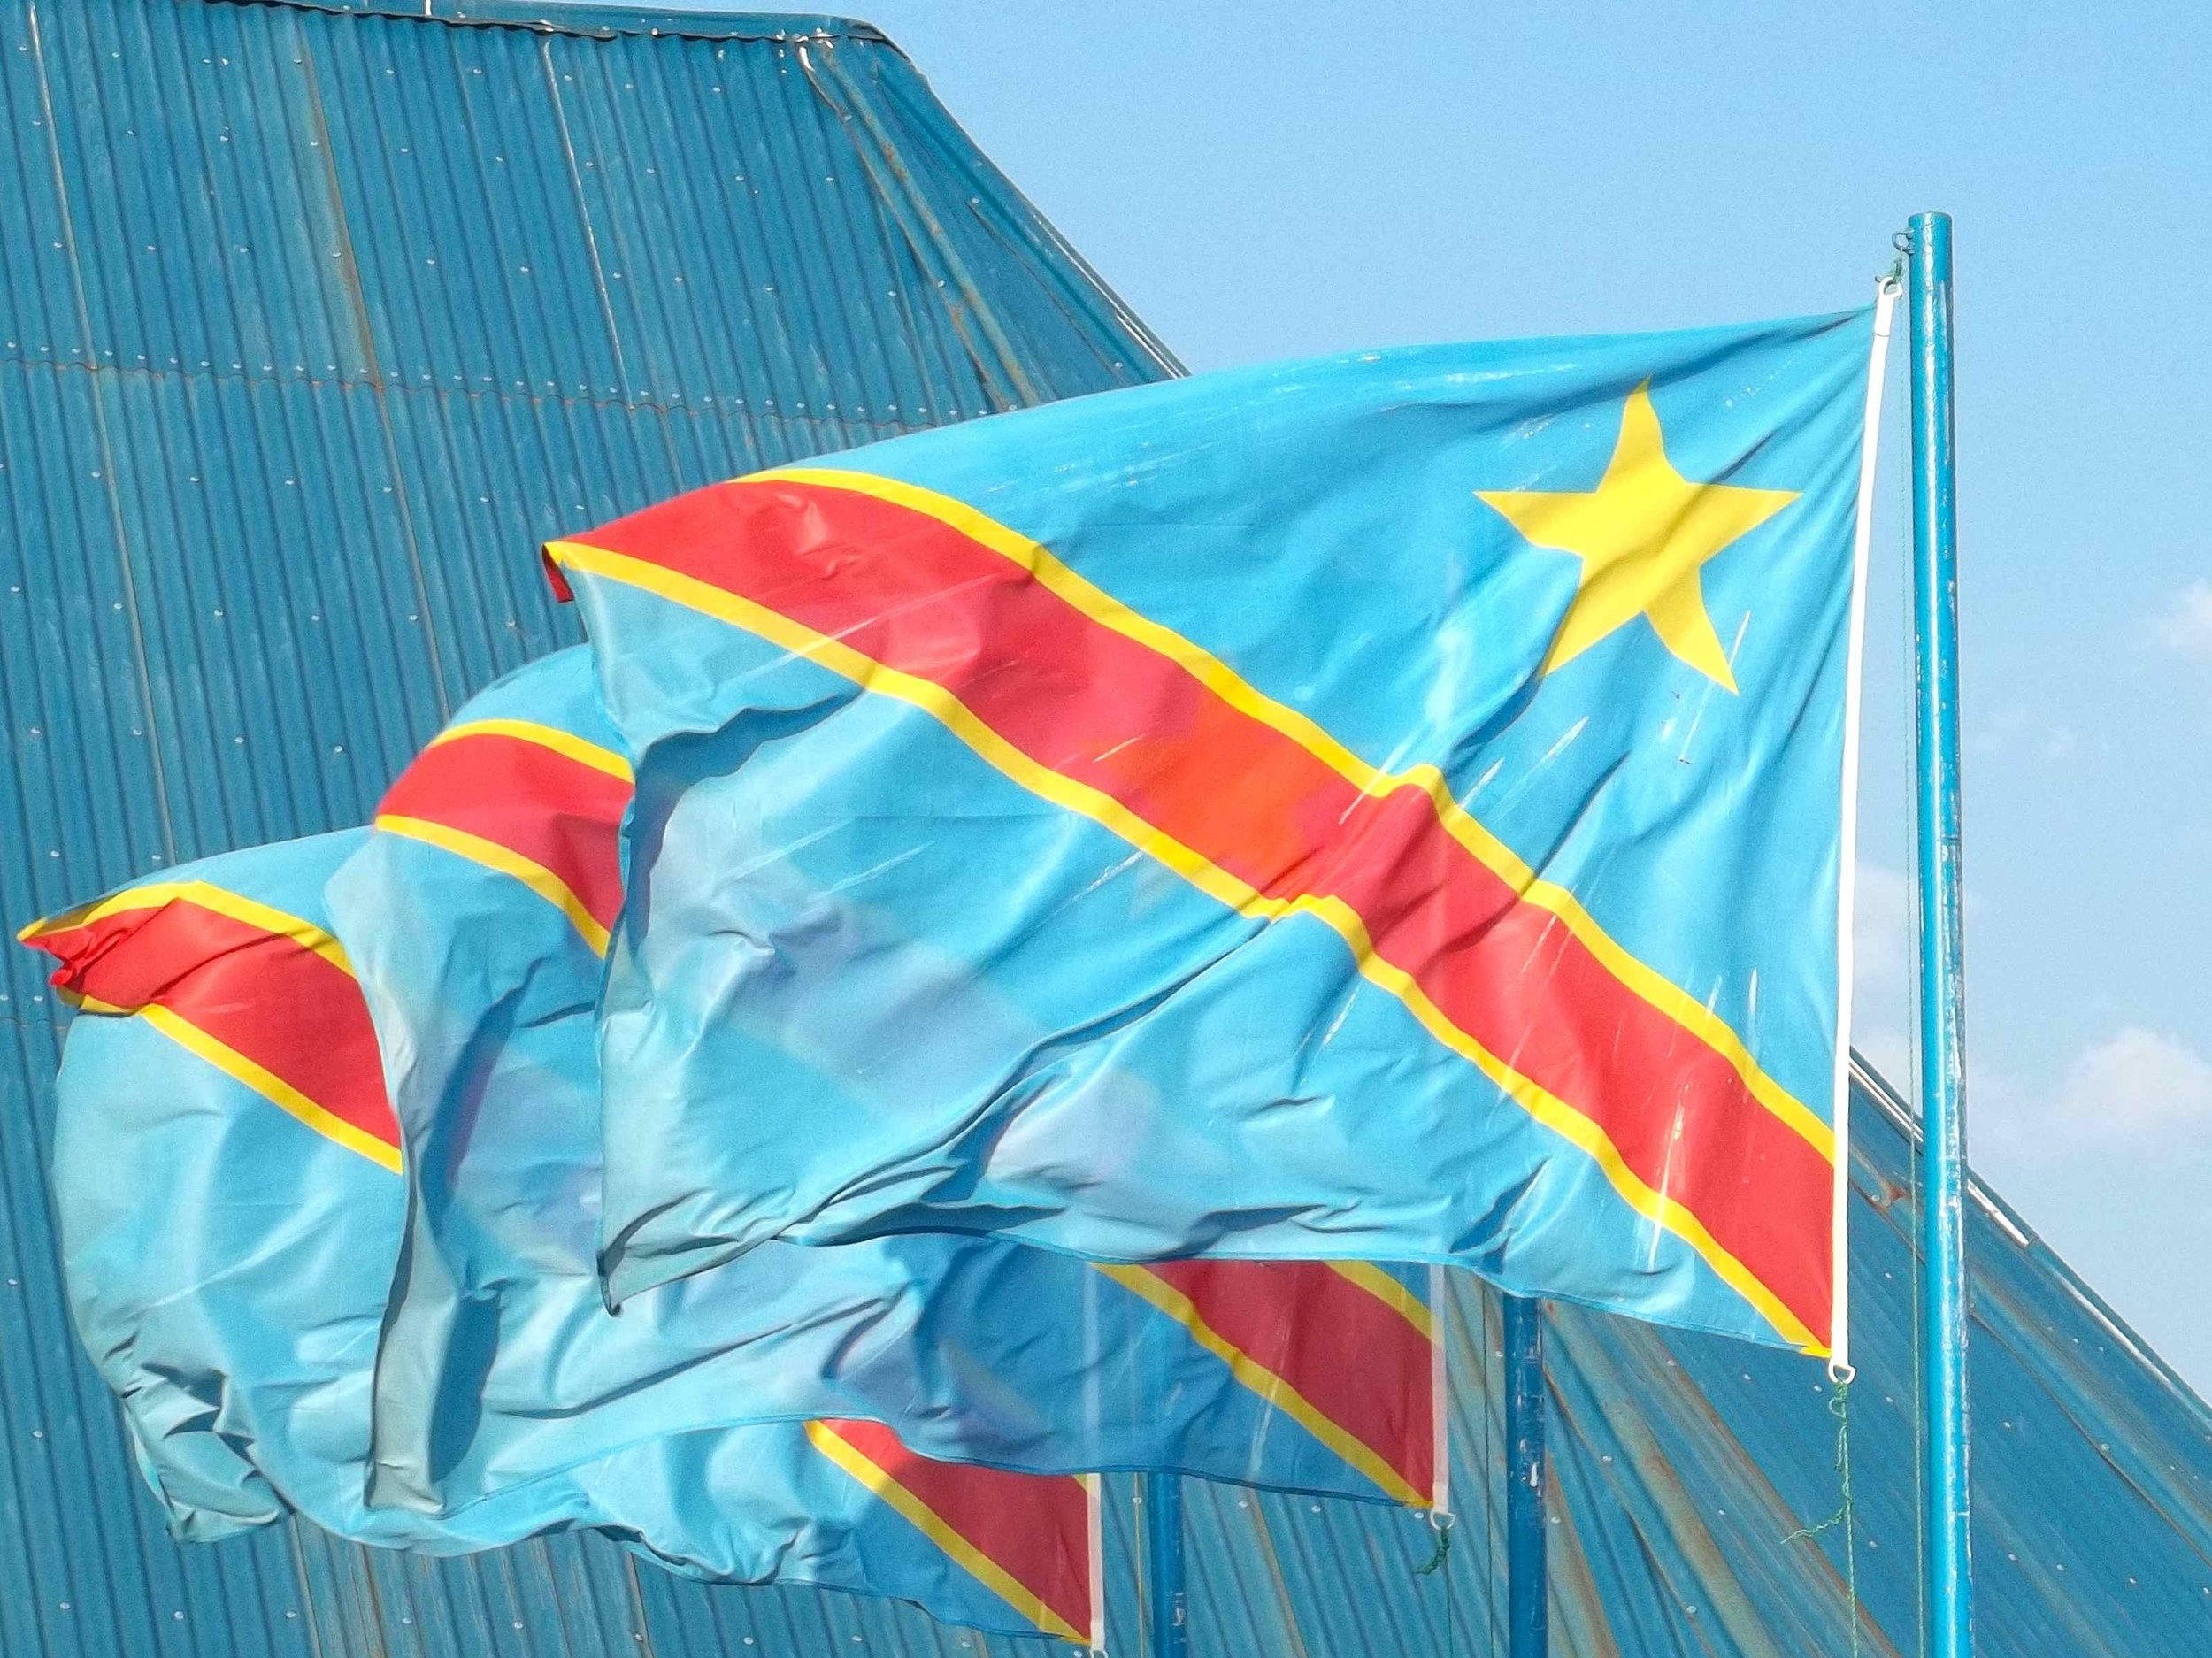 Congolese flags fly at the border